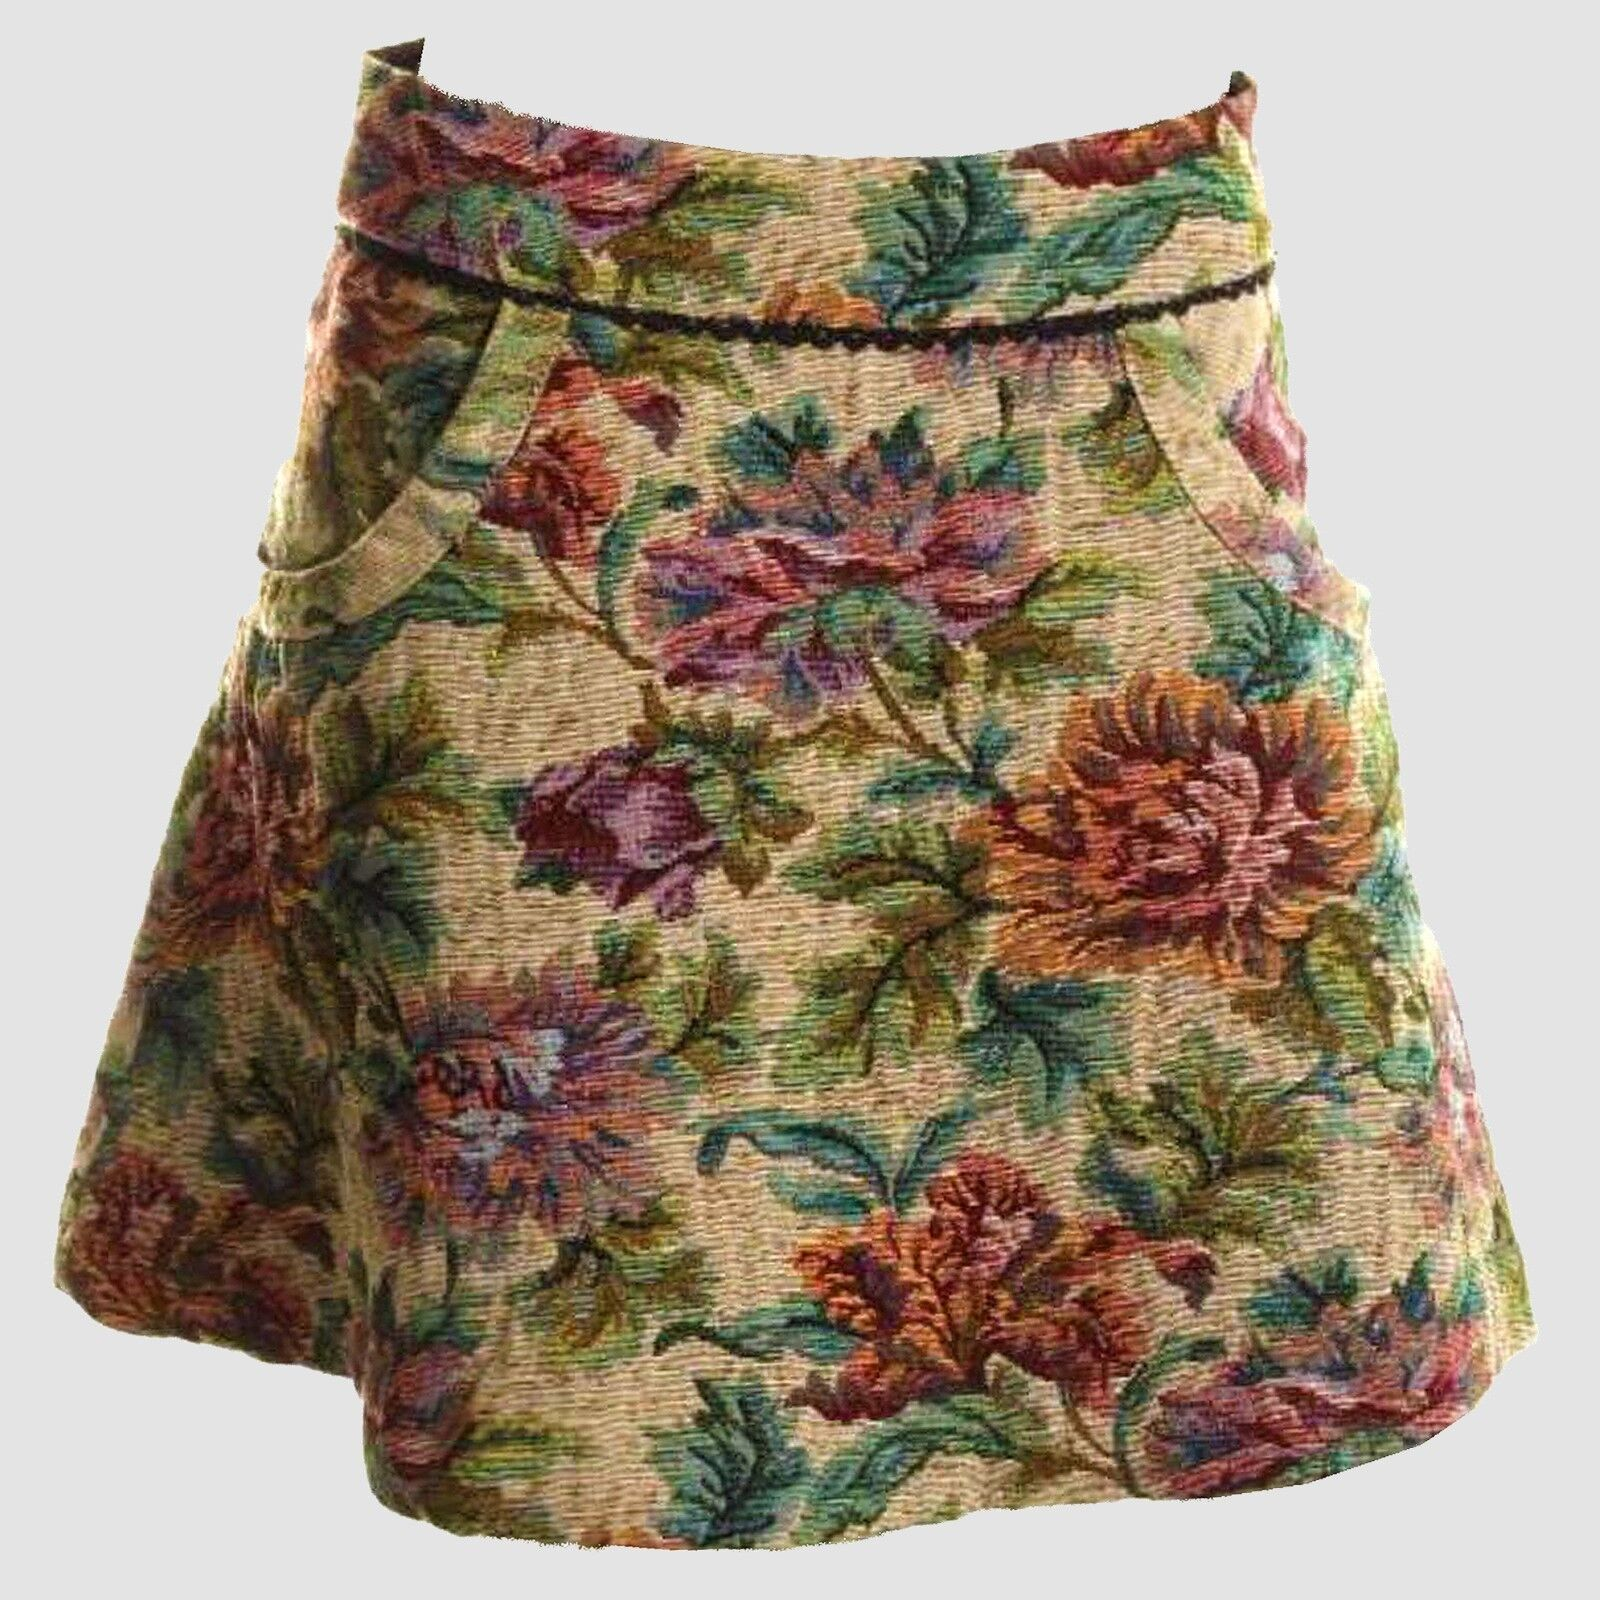 NWT FREE PEOPLE Brocade Gobelin Jacquard Textured Floral  Print A-Line Skirt  98